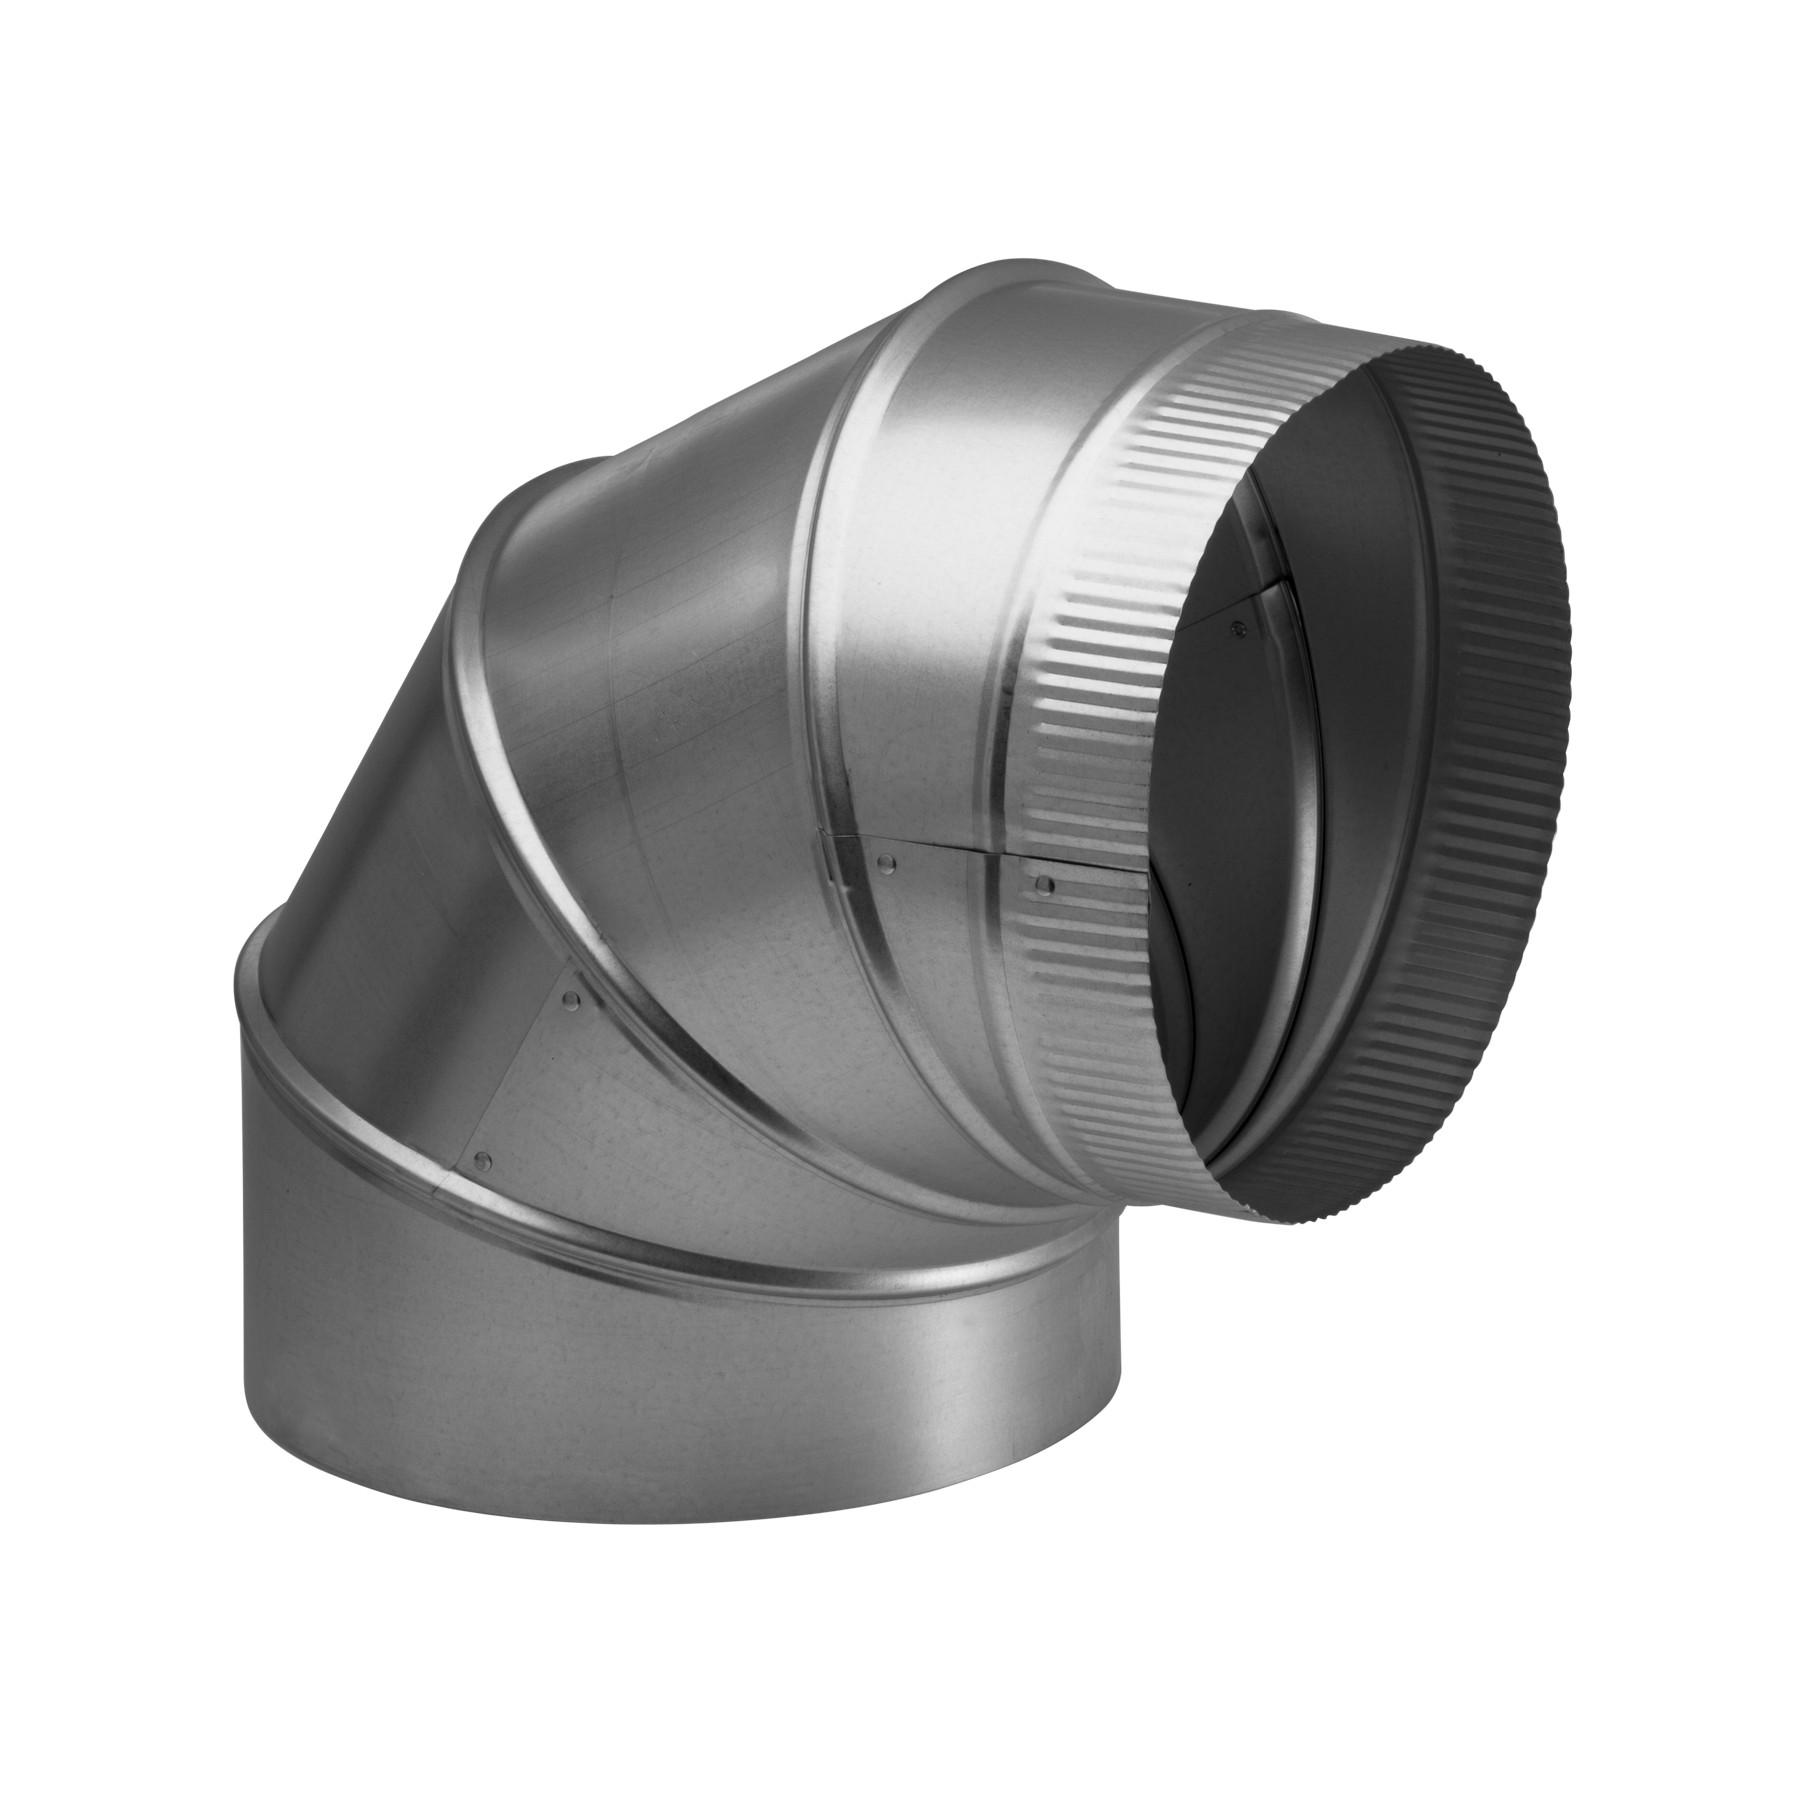 10-Inch Round Elbow Duct for Range Hoods and Bath Ventilation Fans